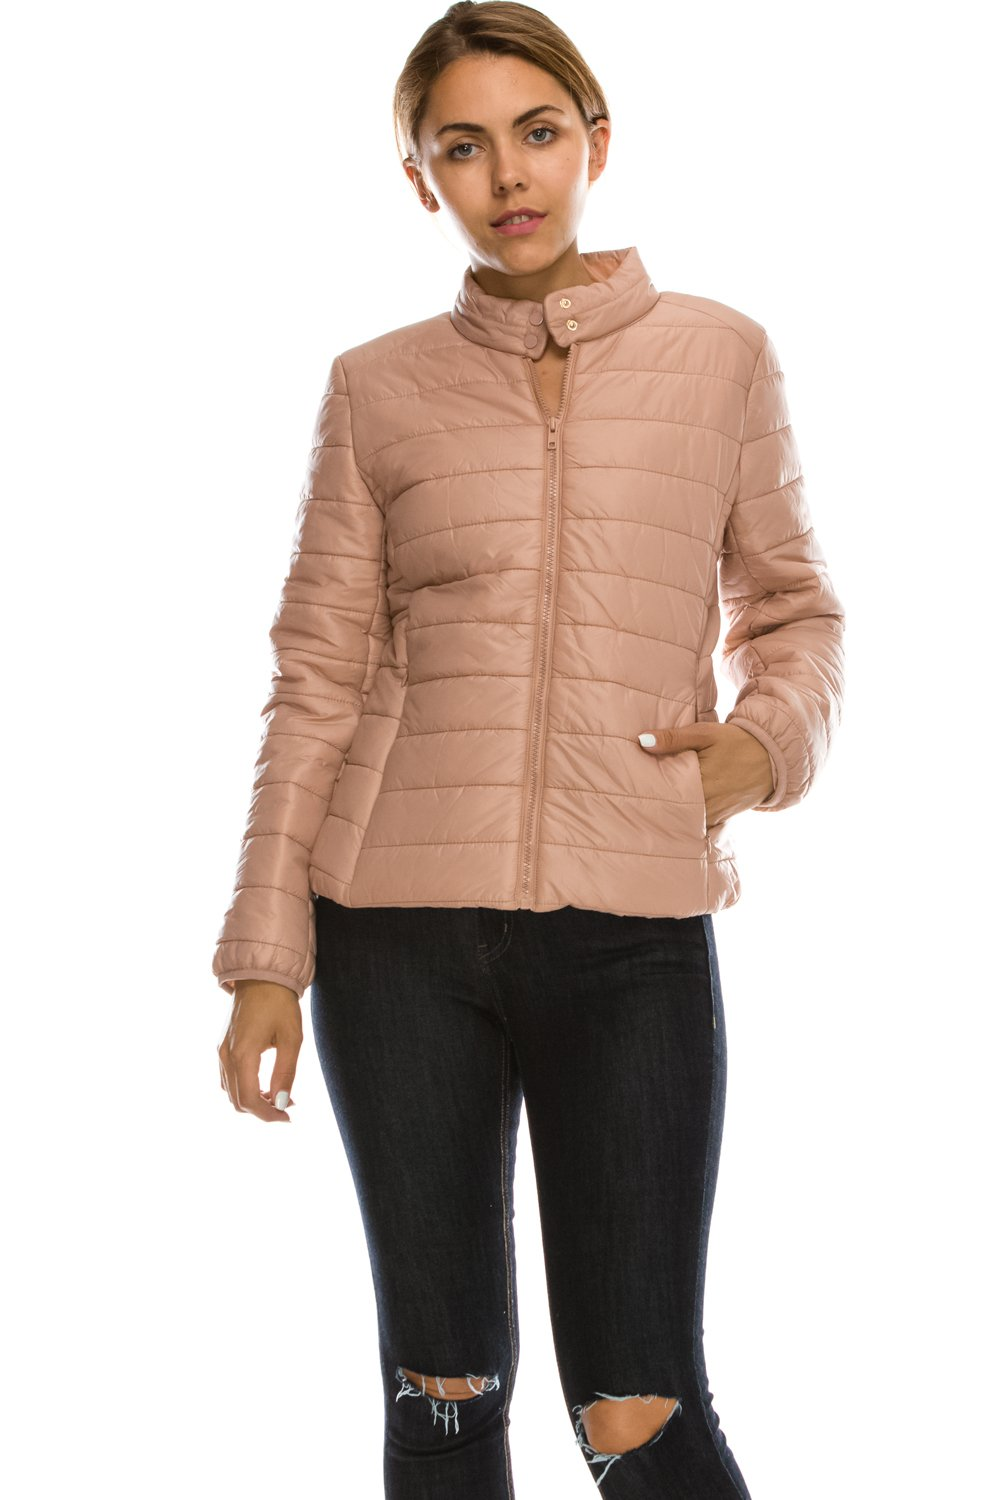 Daisy Women's Lightweight Solid Basic Outdoor Sports Quilted Puffer Jacket. J1(S,DustPeach)